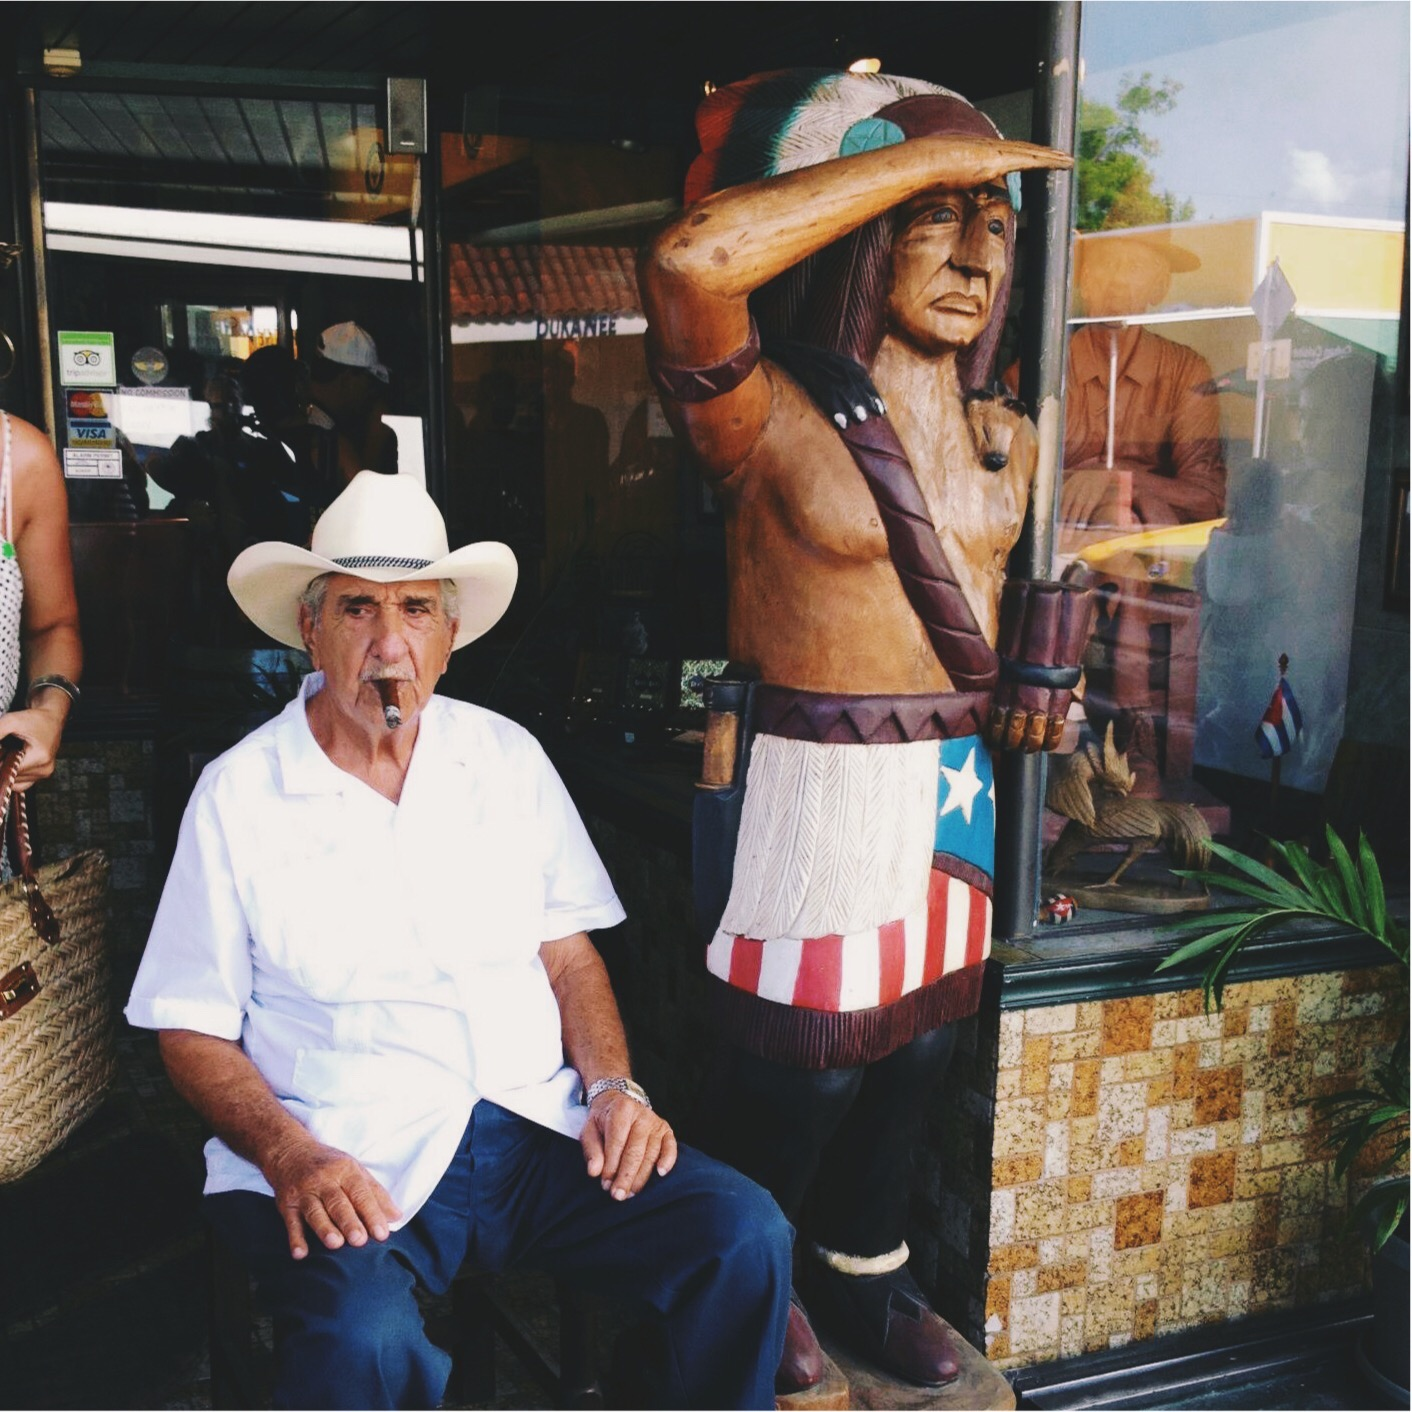 Old man smoking a cigar in Little Havana, Miami